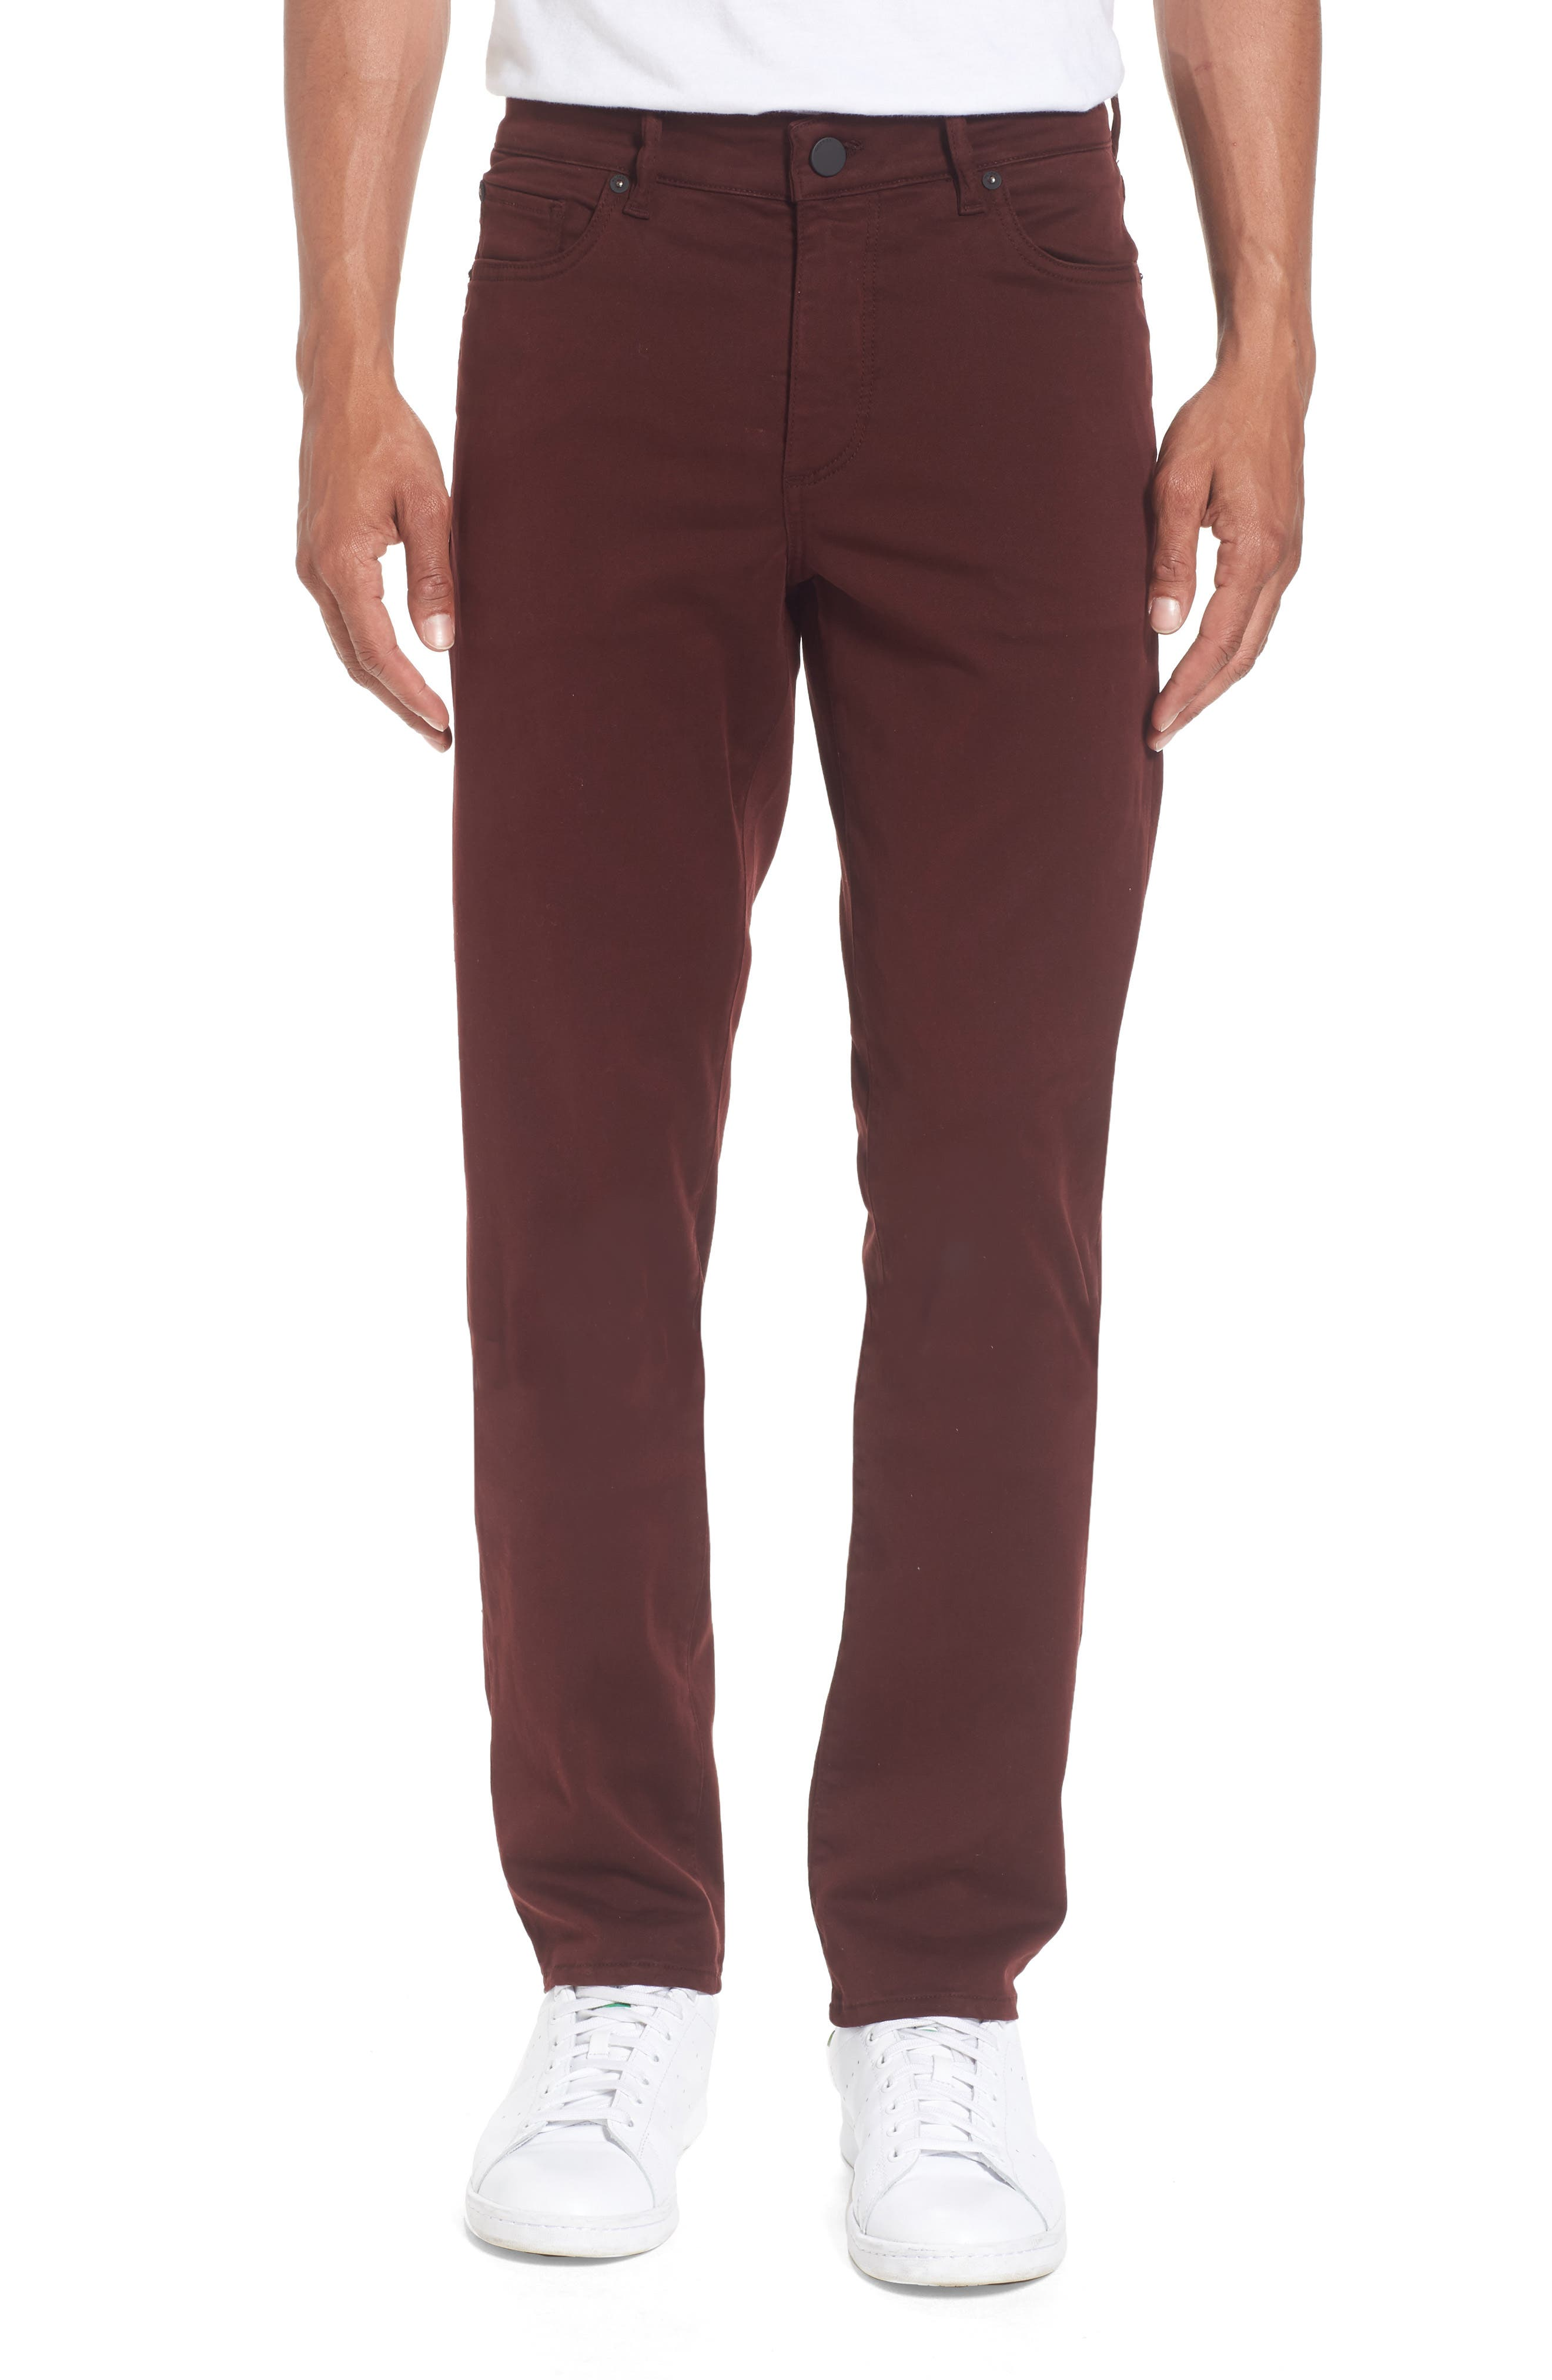 Russell Slim Fit Sateen Twill Pants,                             Main thumbnail 11, color,